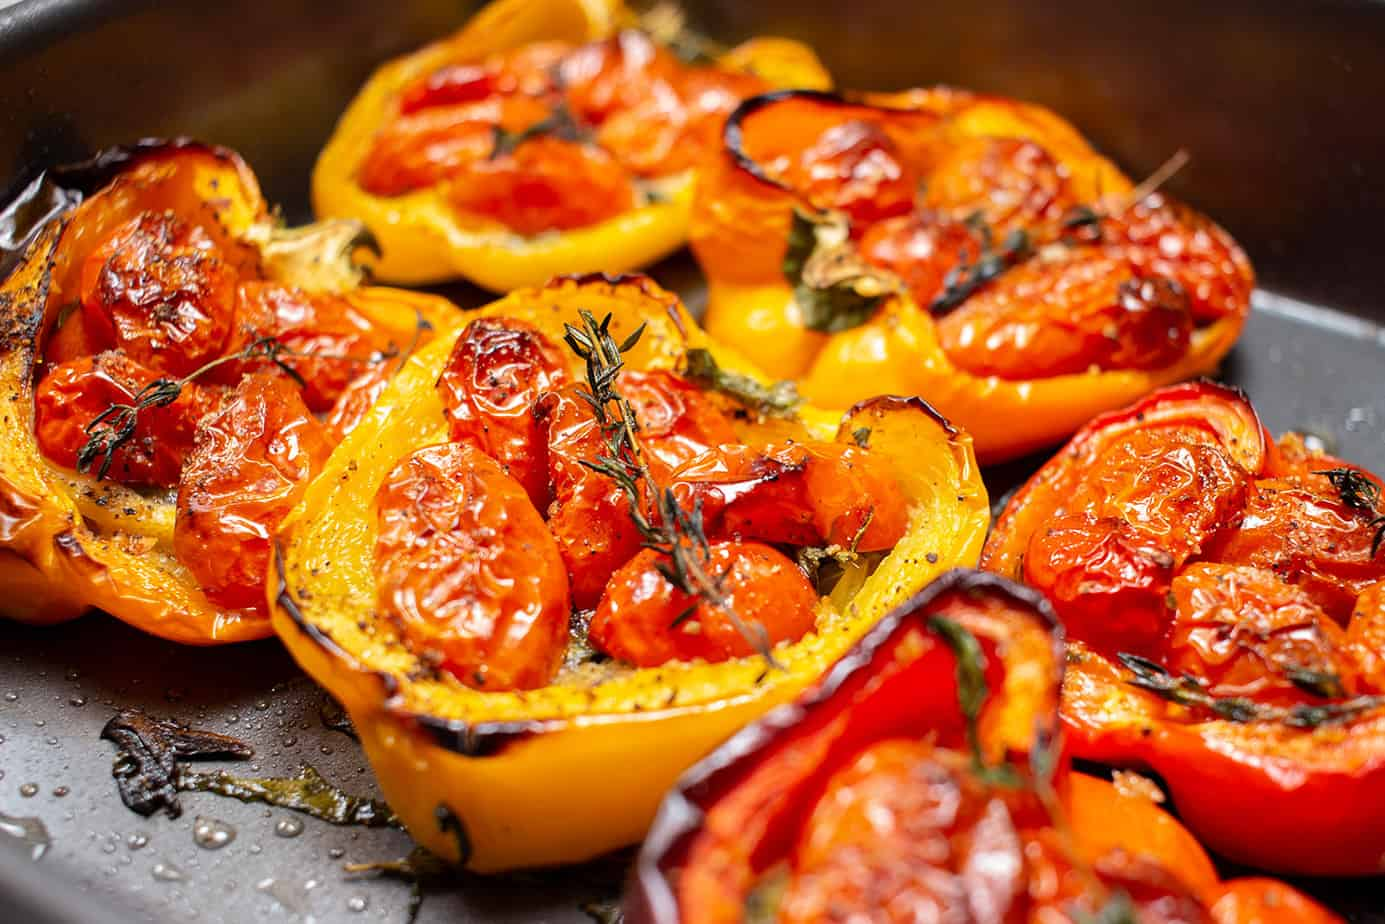 oven-charred tomato stuffed peppers